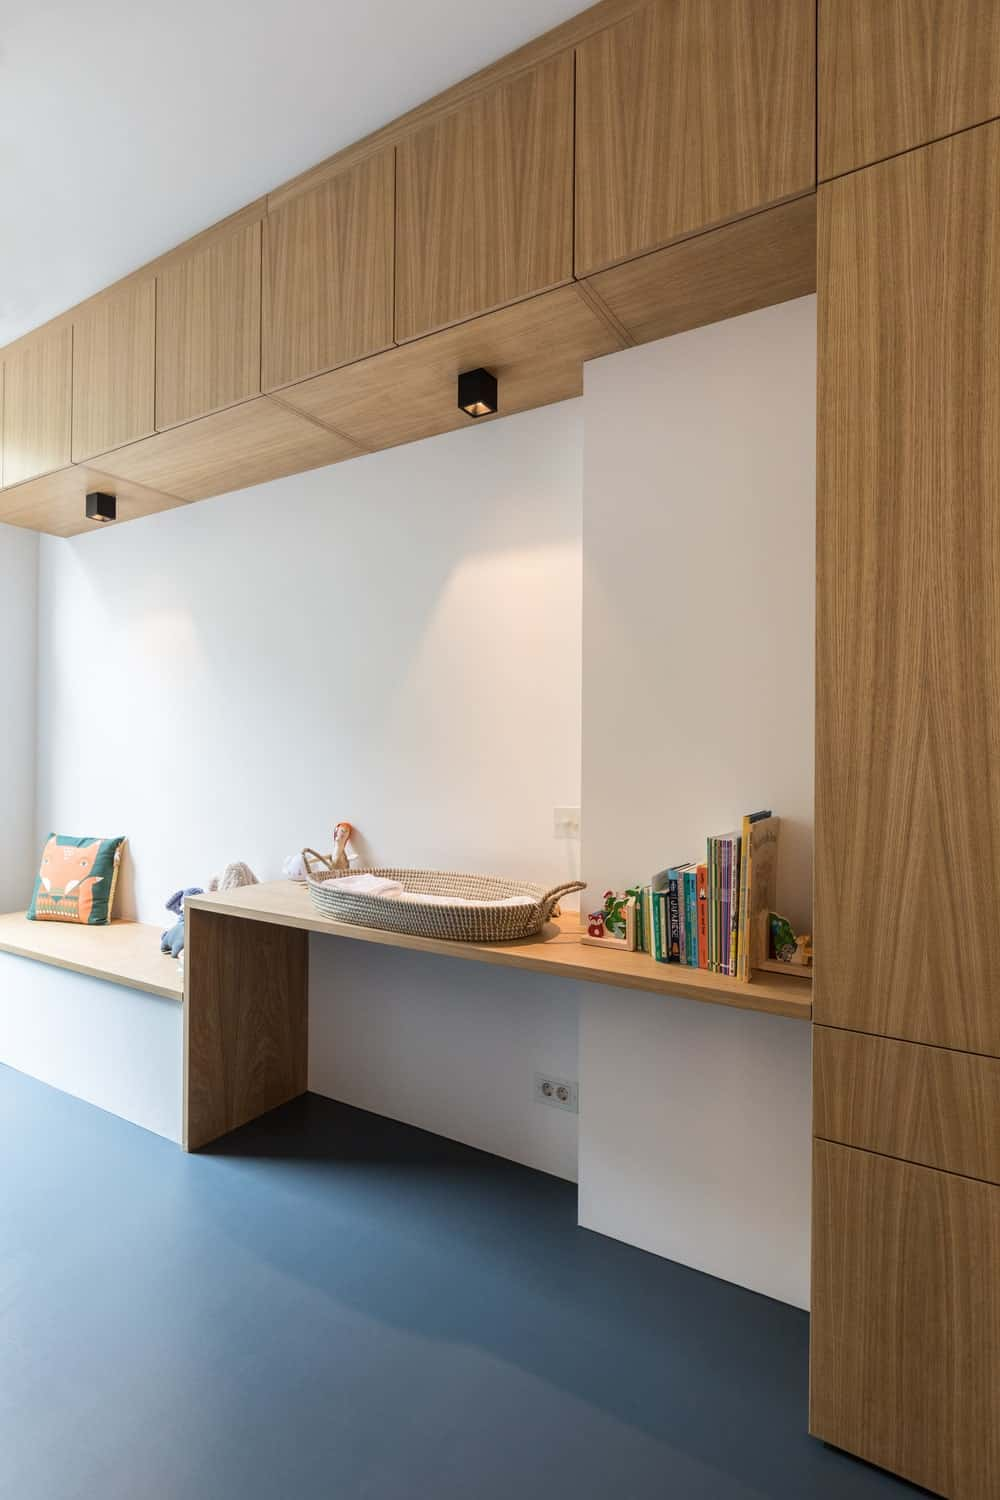 Nursery area in the Frans Halsstraat designed by Cantero Architecture.